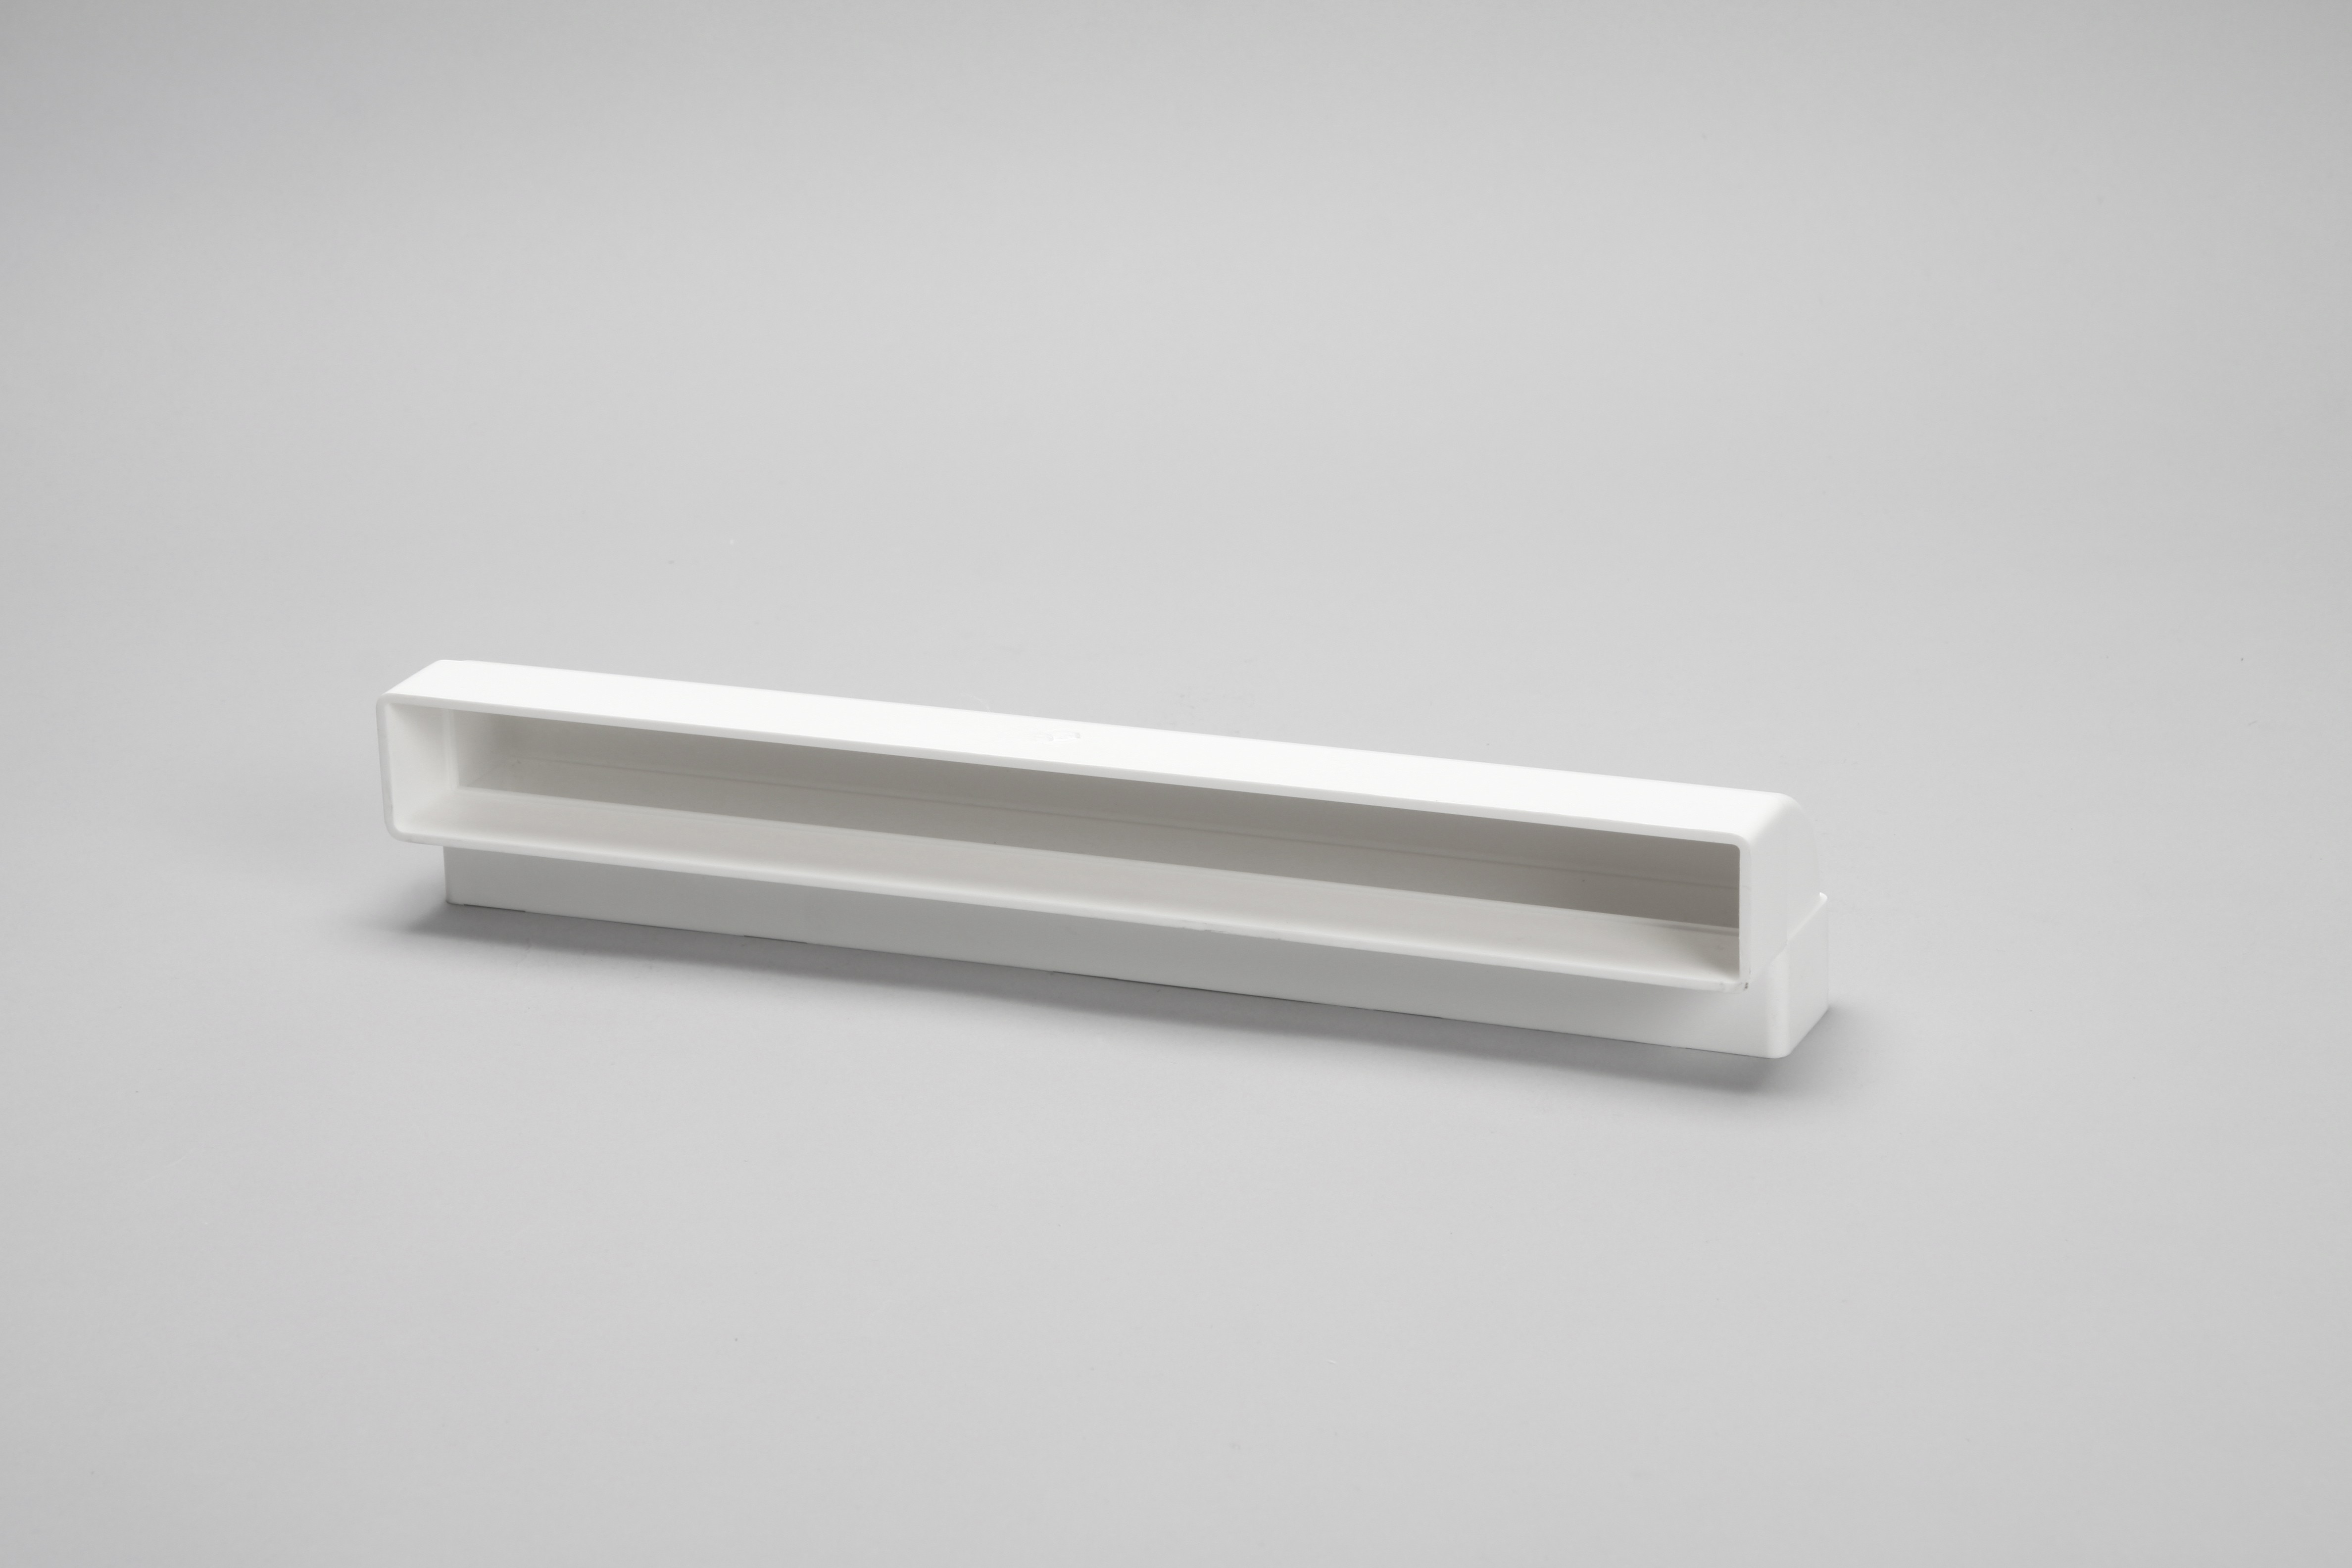 Vertical 90 degree bend 308mm x 29mm ducting